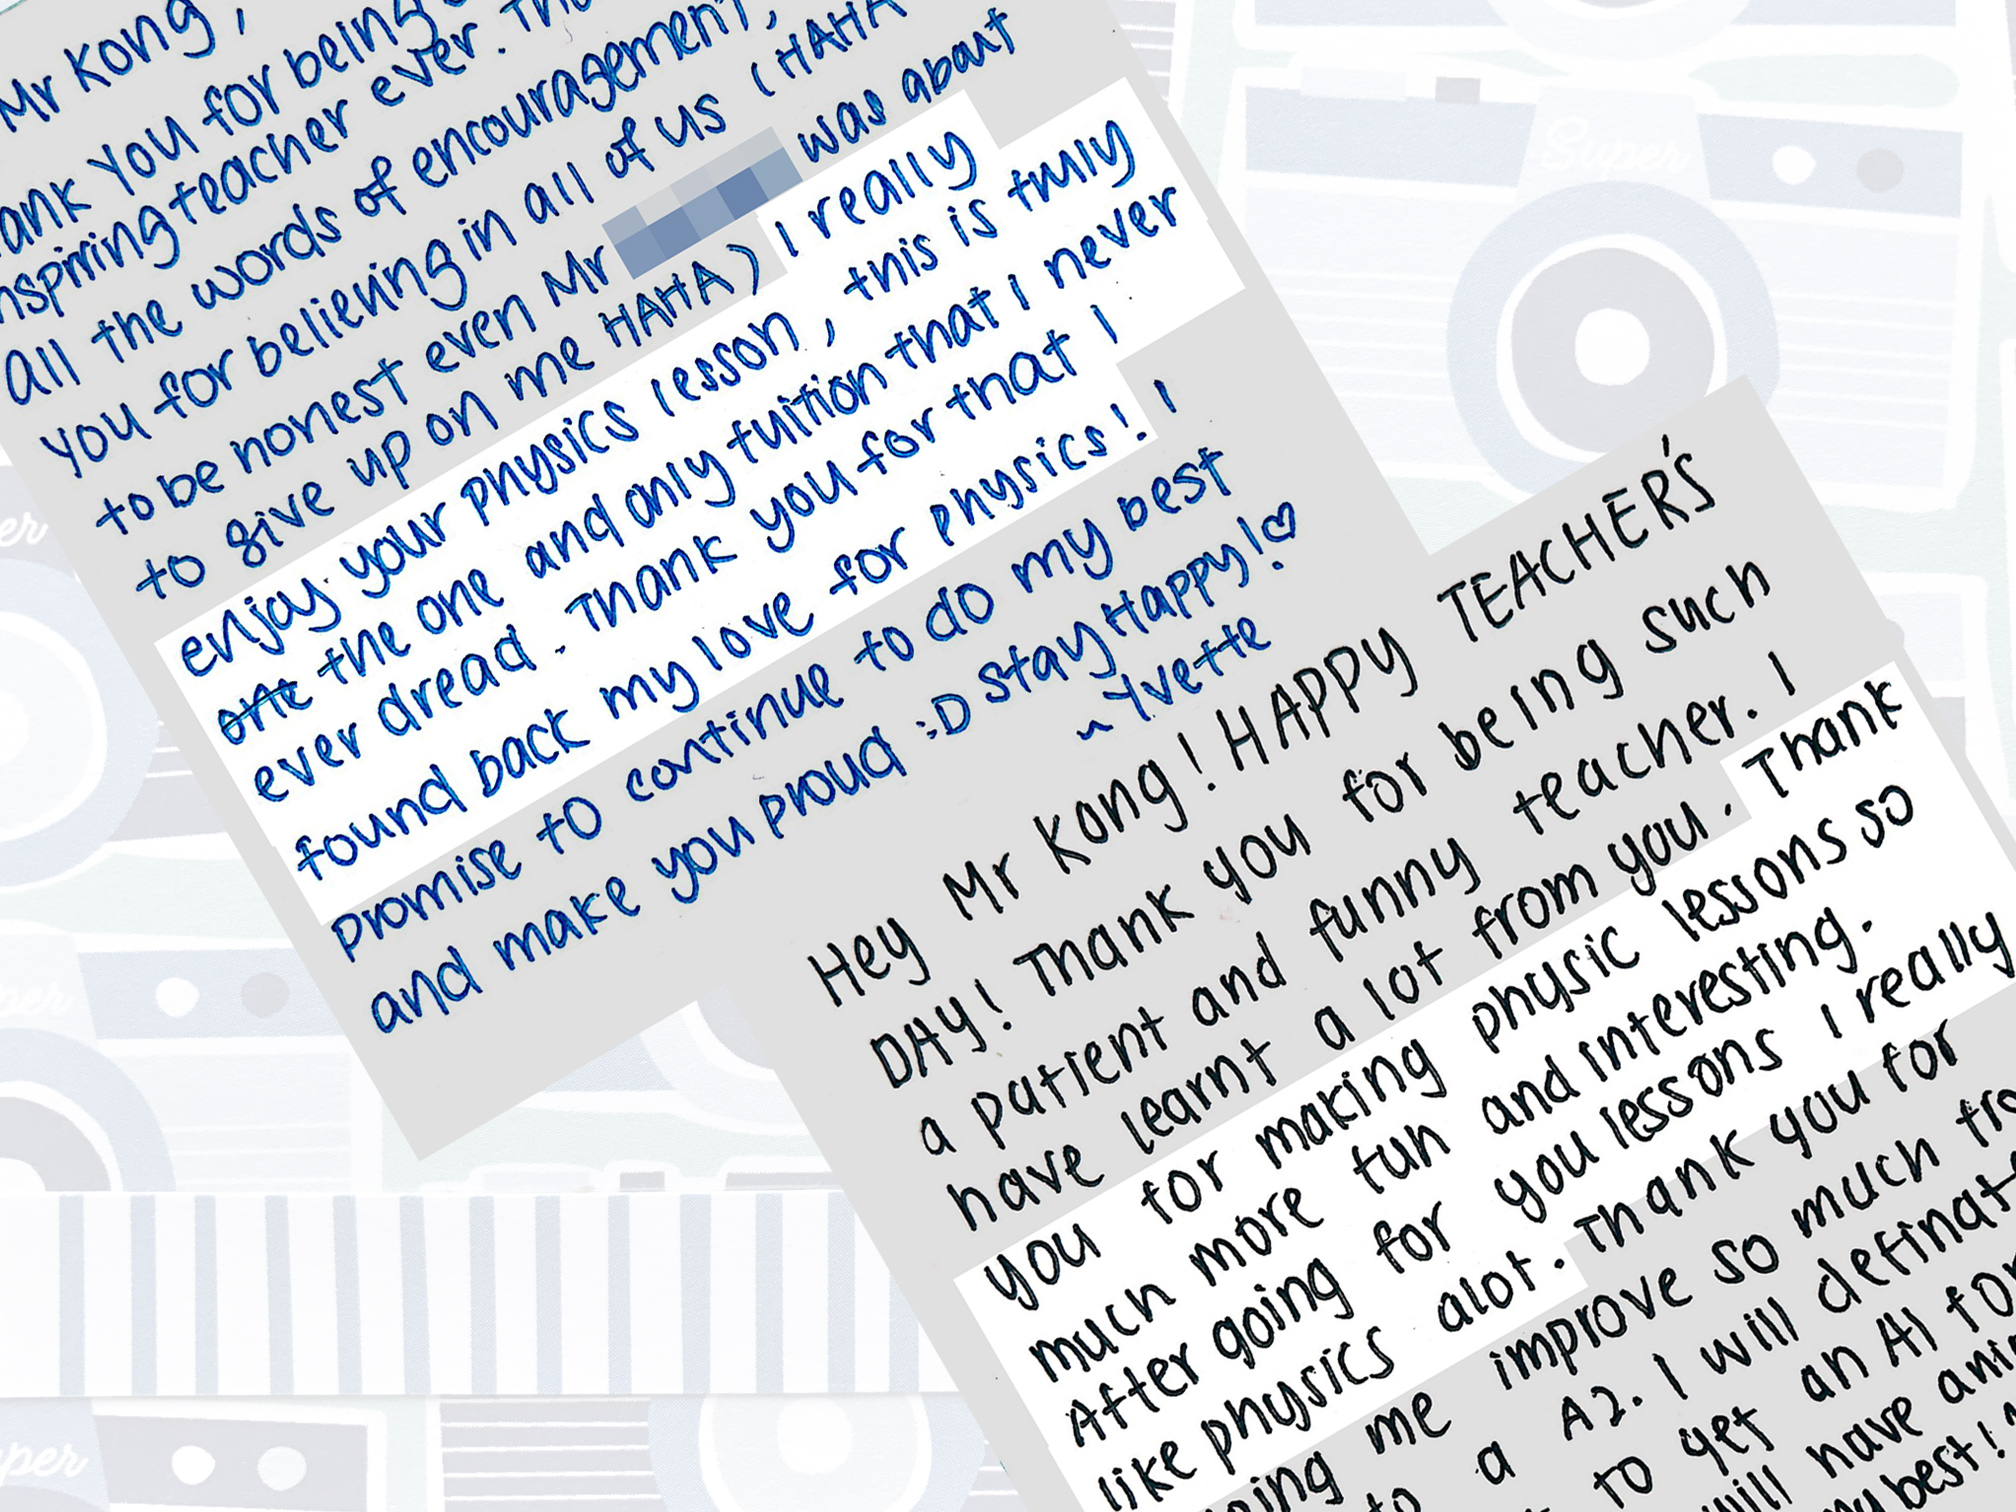 Written messages from Yvette, Nanhua High School and Shane, Jurong Secondary School